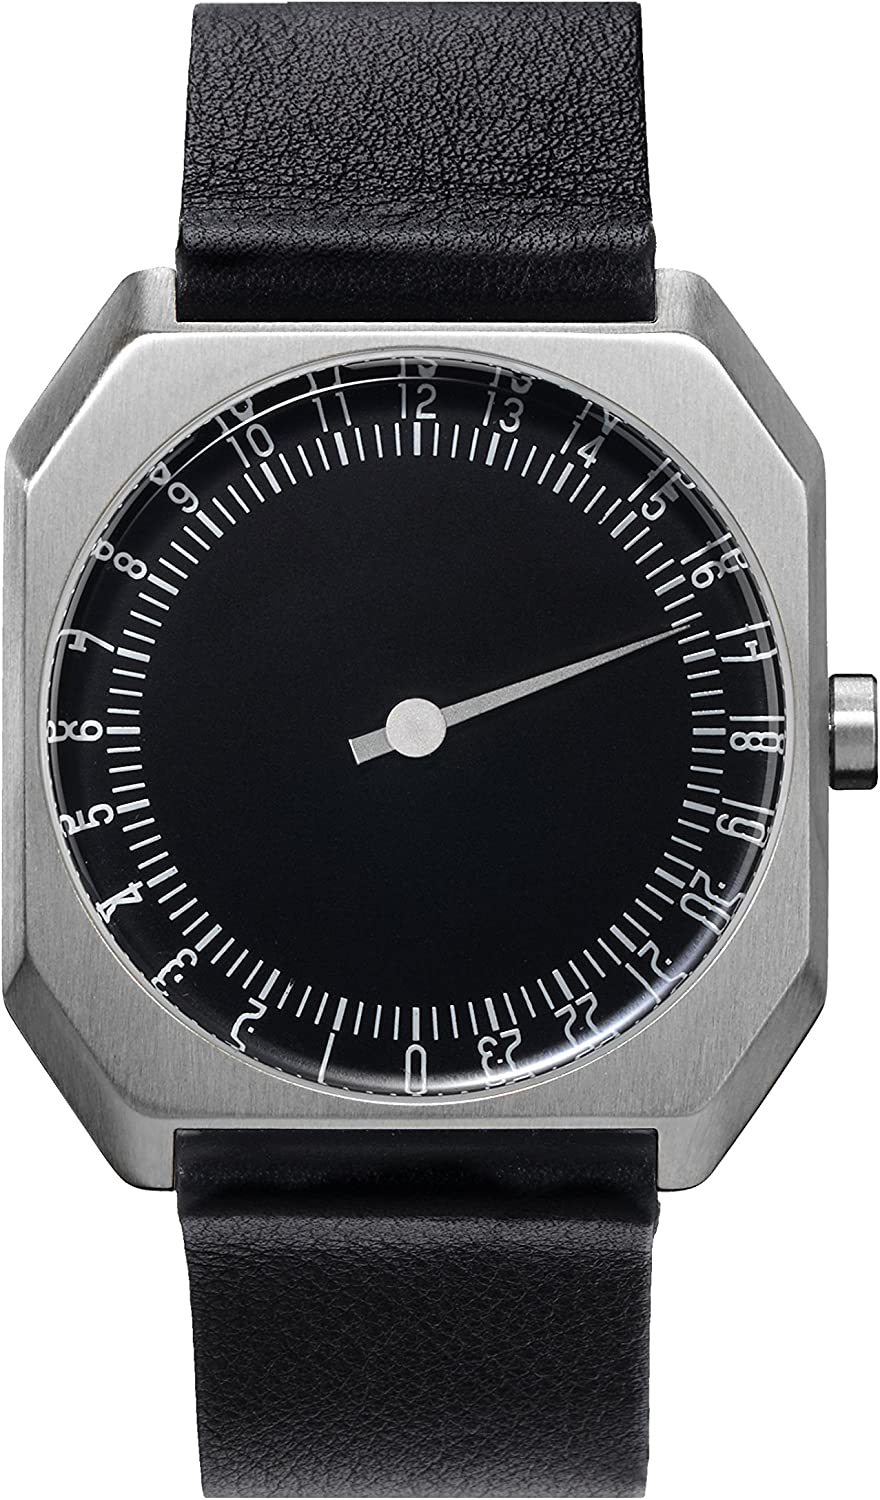 slow Jo 06 – Swiss Made one-hand 24 hour watch – Silver with black leather band